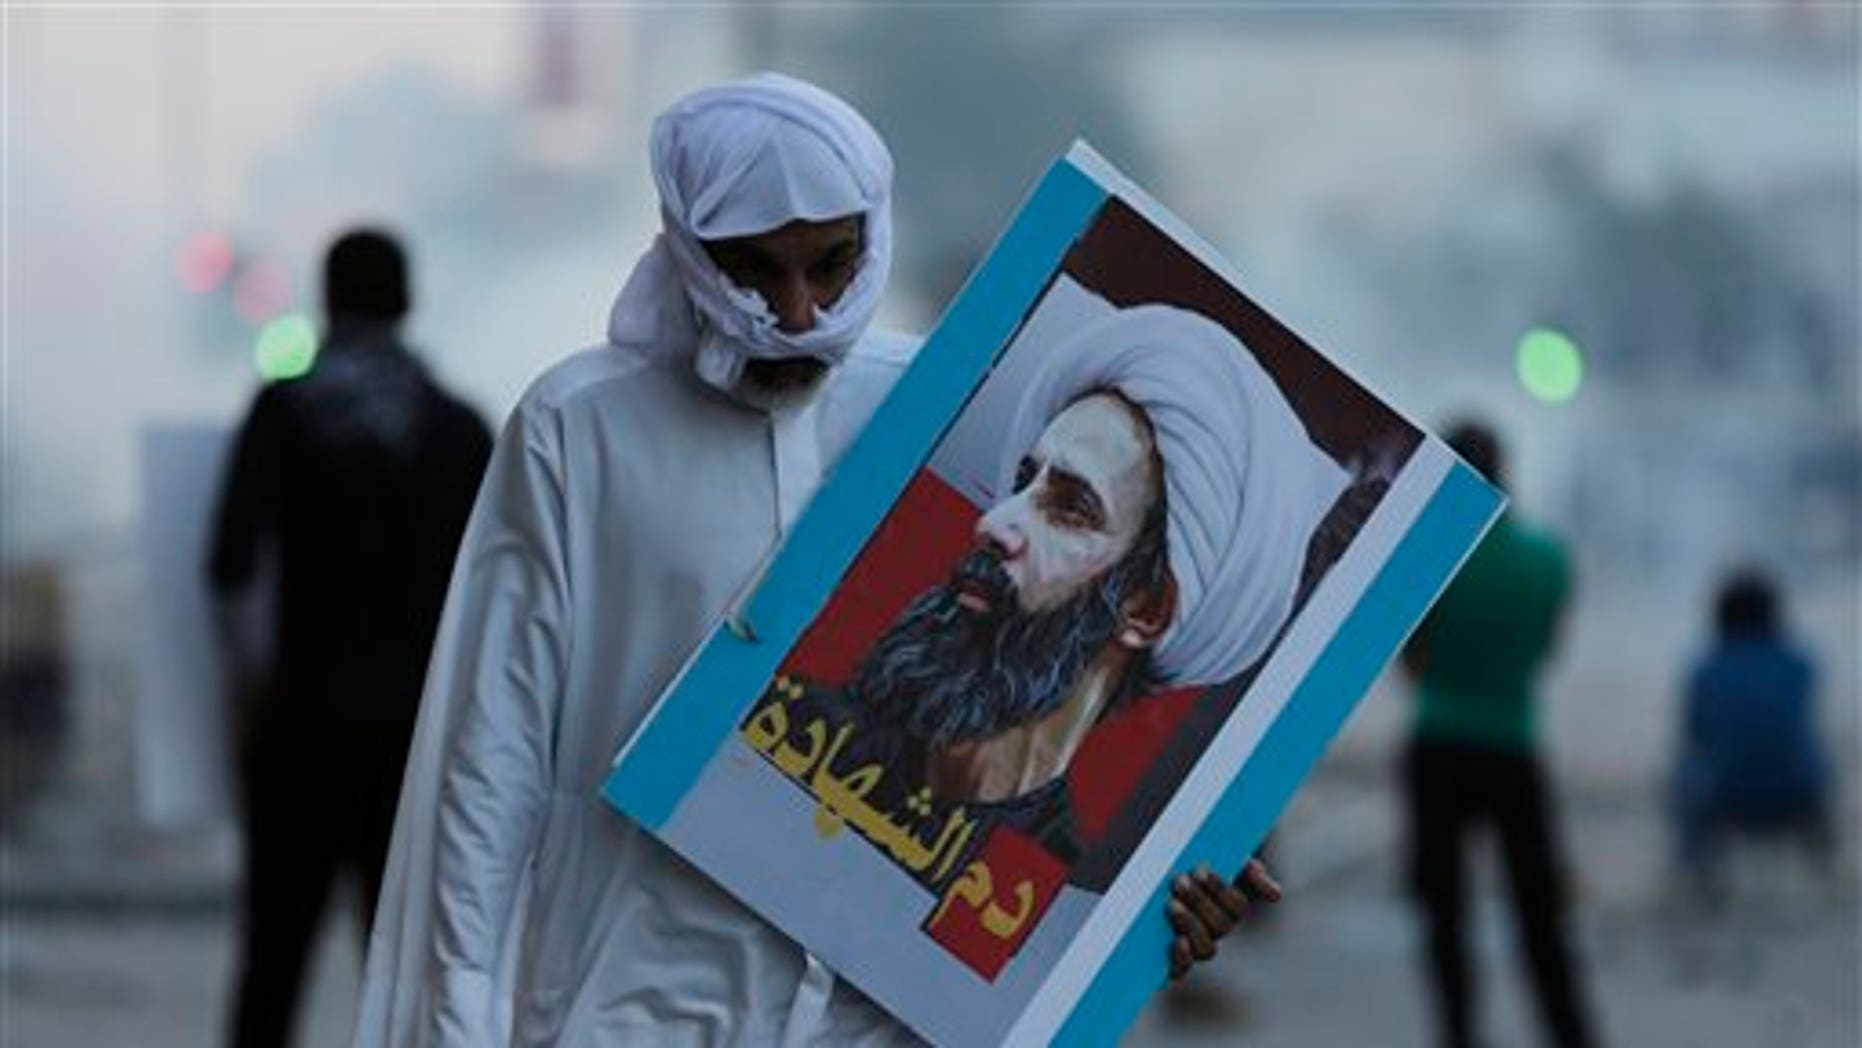 """A Bahraini protester carries a picture of Saudi Shiite cleric Sheikh Nimr al-Nimr that reads, """"blood of the martyr,"""" during clashes with riot police in Sitra, Bahrain, Friday, Jan. 8, 2016. (AP Photo/Hasan Jamali)"""